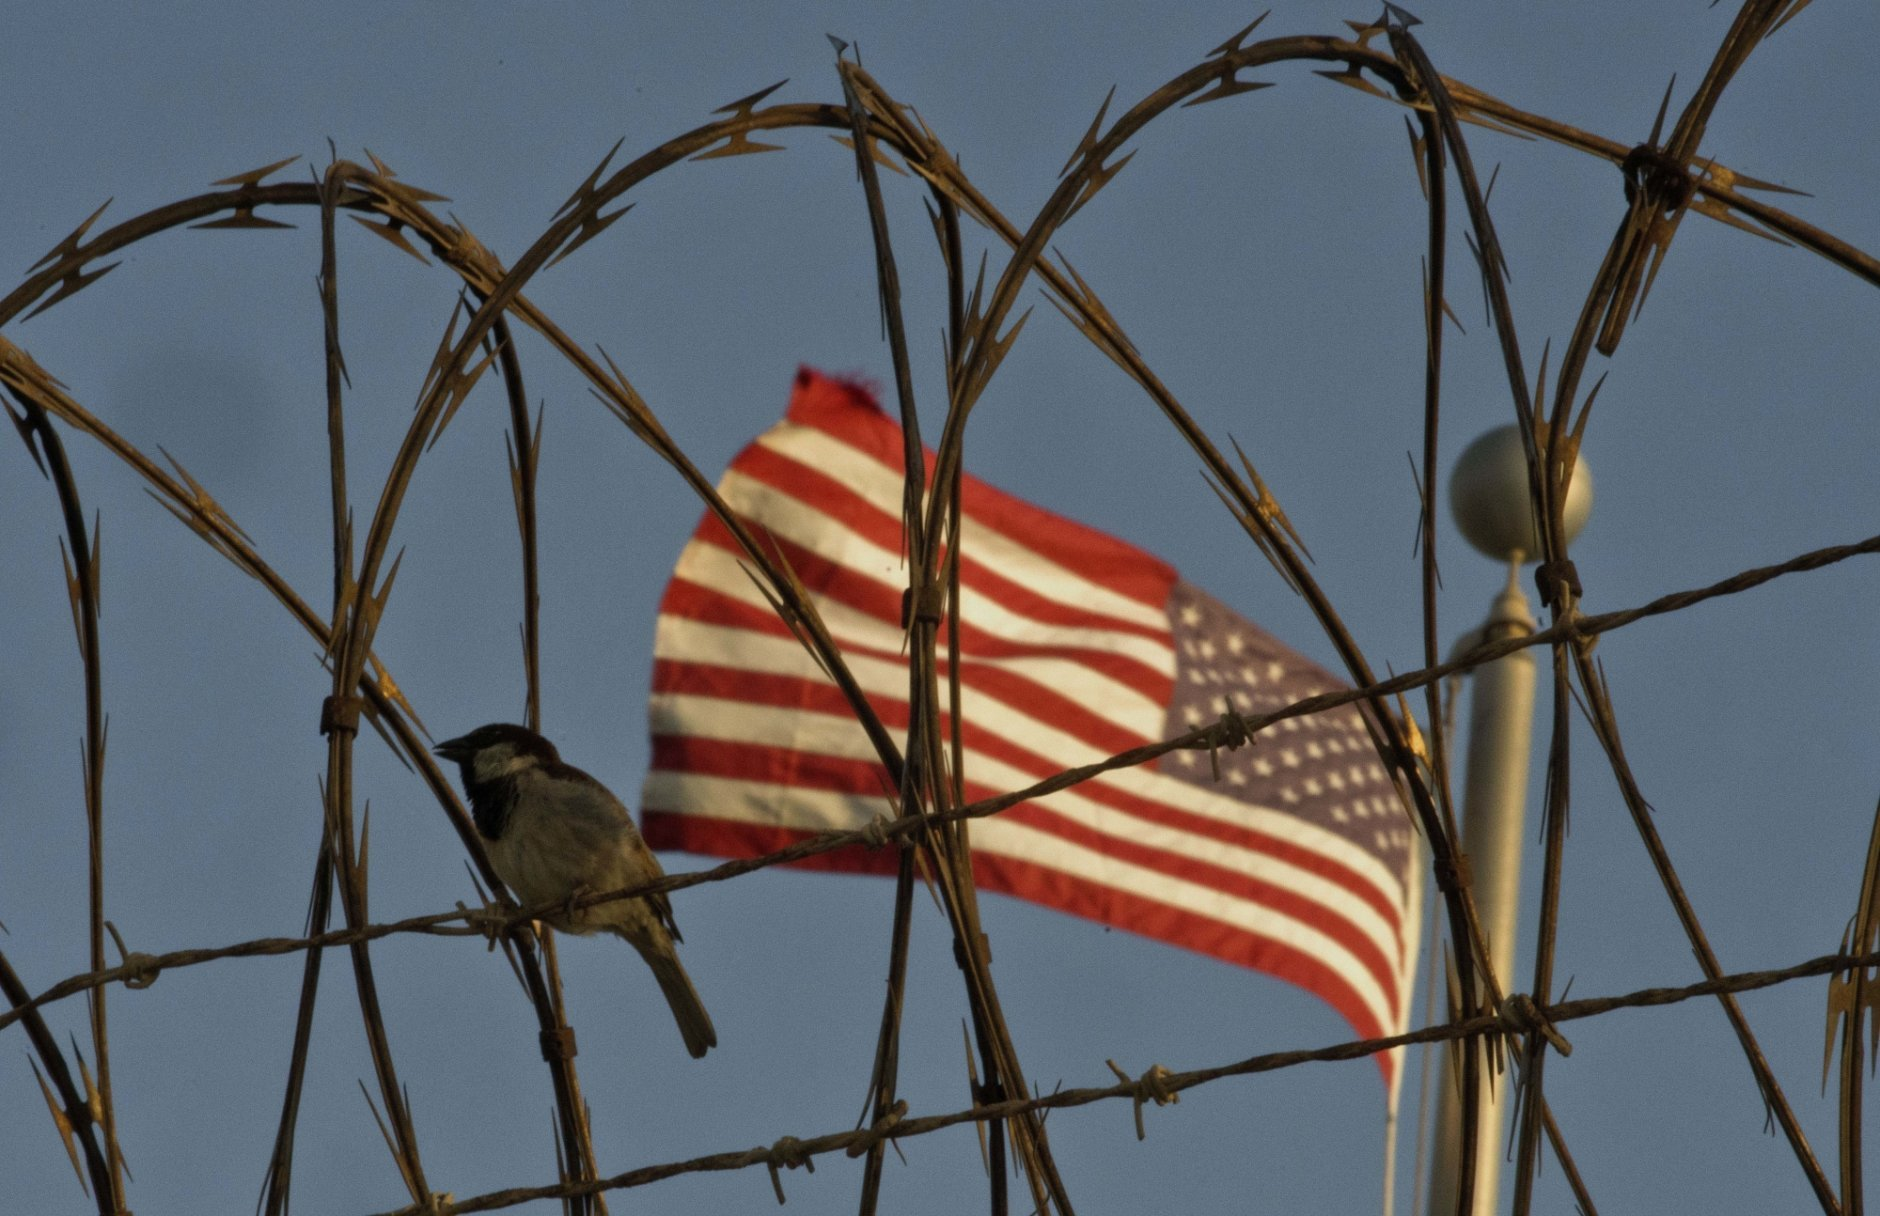 In this June 5, 2018 photo reviewed by U.S. military officials, a bird perches on barbed wire where a U.S. flag flies at the Camp VI detention facility on the Guantanamo Bay U.S. naval base in Cuba. The two Guantanamos have been a contrast since the U.S. opened the base at the southeastern tip of the island in 1903, following the Spanish-American War, and the divide has only grown under Cuba's communist government, which refuses to cash the annual rent checks from Washington as it insists the U.S. leave. (AP Photo/Ramon Espinosa)